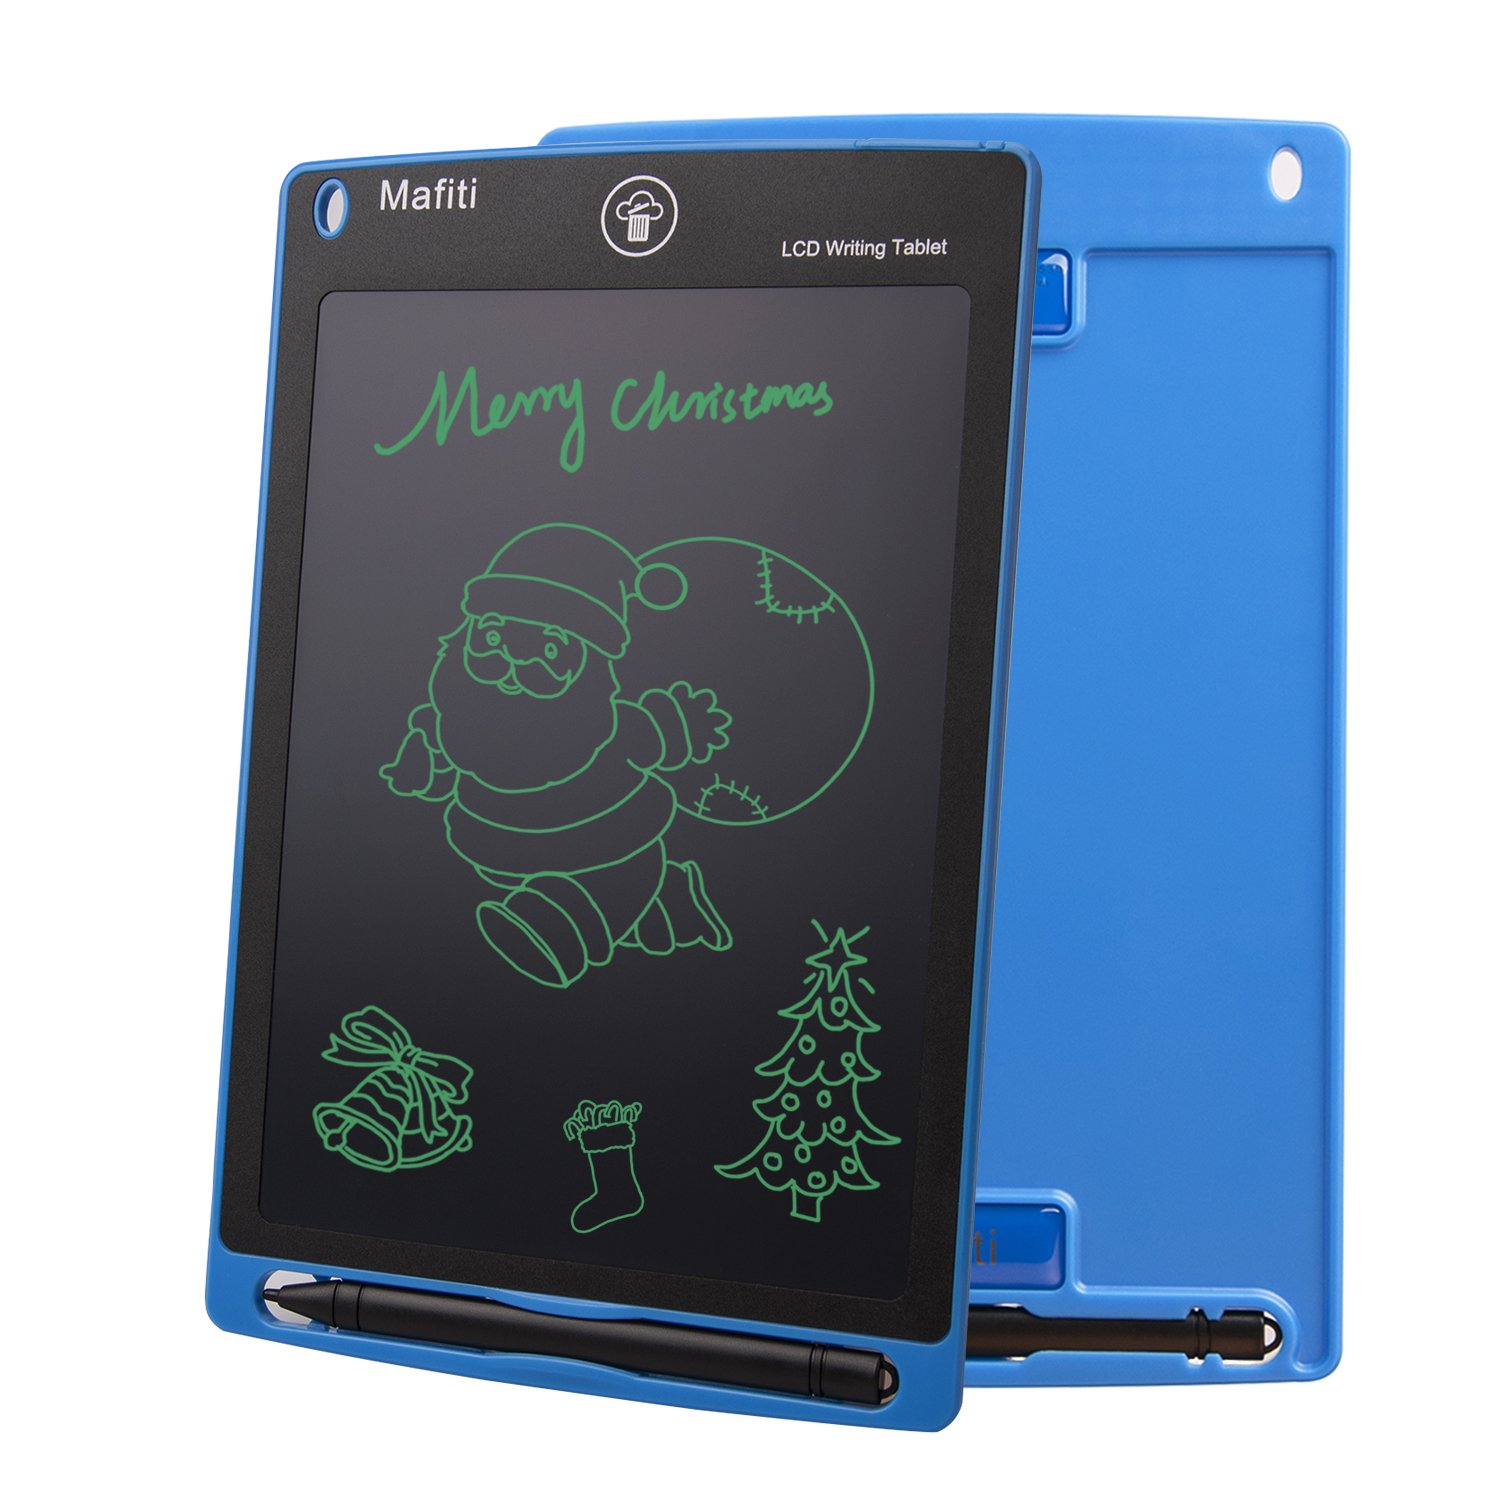 LCD Writing Tablet Kids - Mafiti 8.5 Inch Home Message Office Memo Electronic Graphic Drawing Board